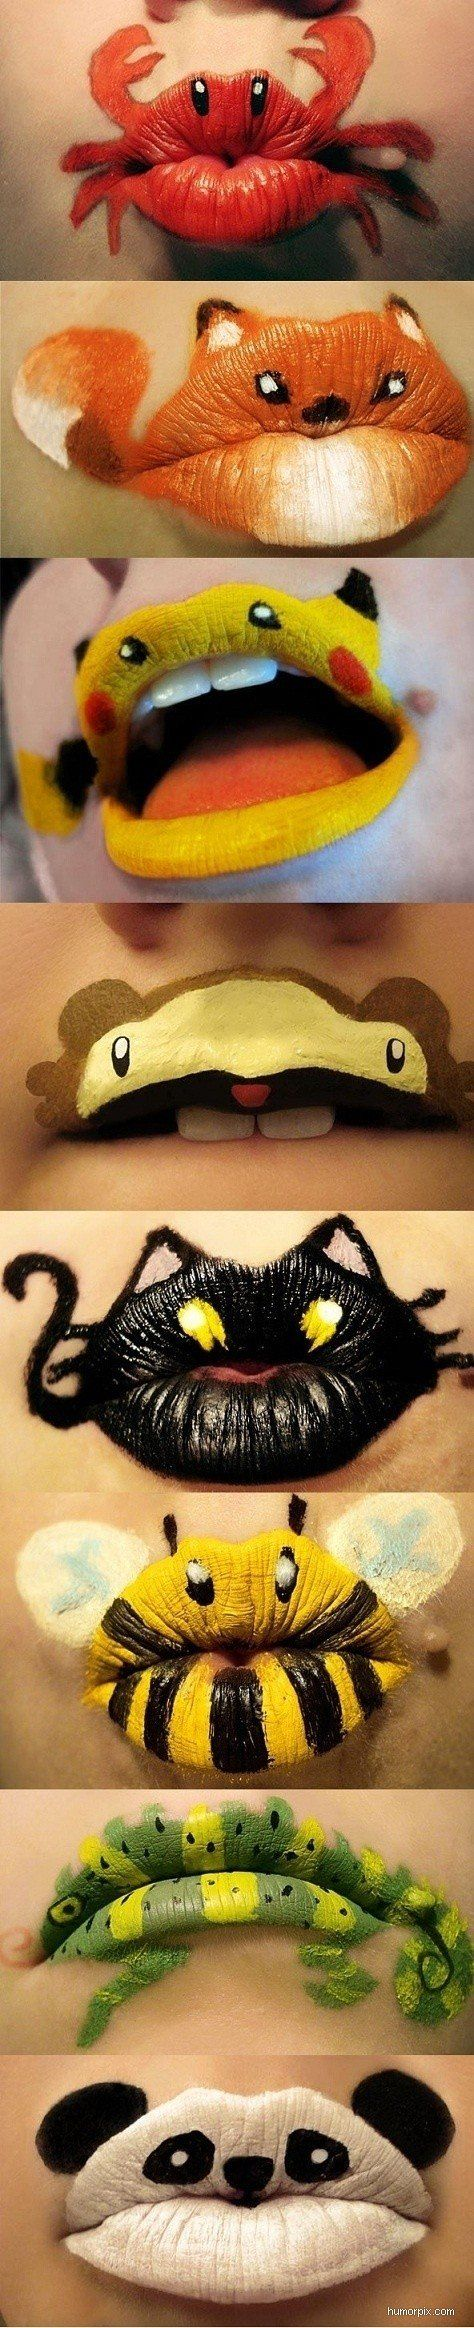 Animal lips: good ideas for a mitzvah activity or kids party, not to mention Halloween! Source: http://lolhit.com/6732_Kiss_me_like_one_of_your_french_girls/